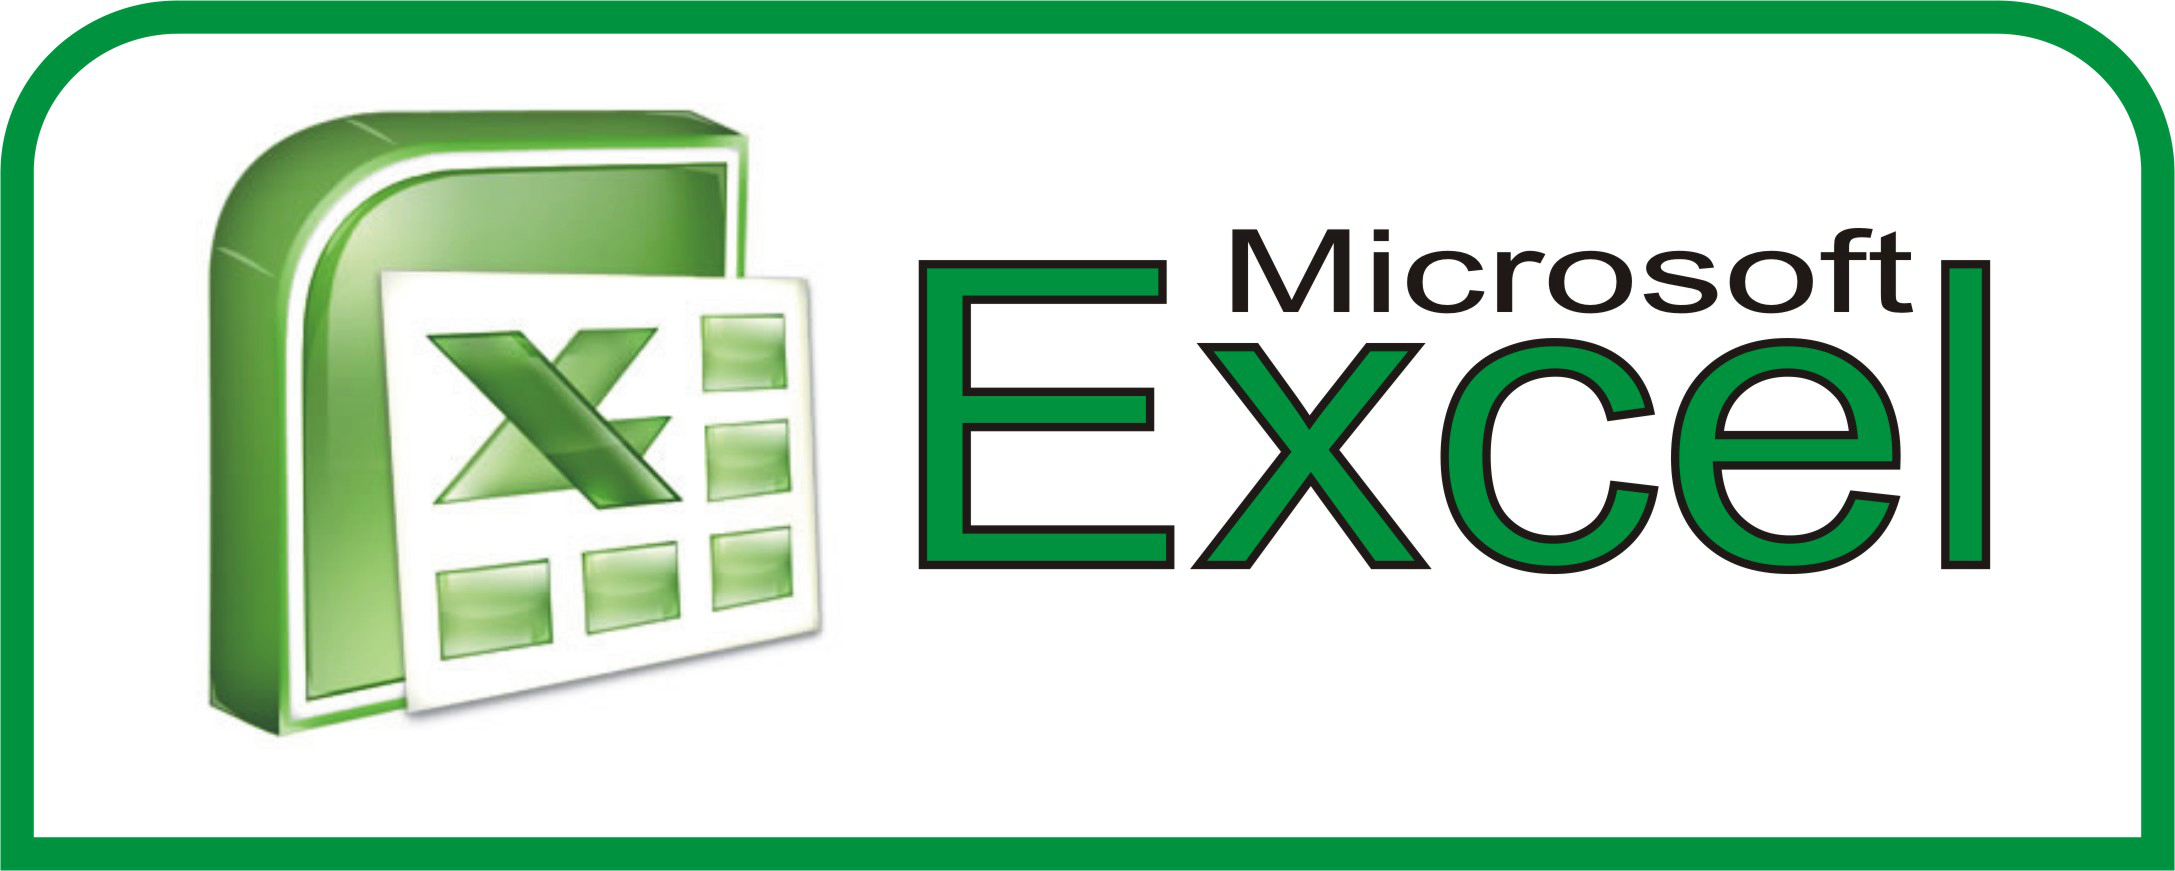 Ediblewildsus  Nice  Excel Shortcuts You Probably Didnt Know About  Techdissected With Gorgeous Microsoft Excel  Templates Besides Excel If Lookup Furthermore New Line In An Excel Cell With Appealing Format Excel Date Also Value Stream Mapping Excel In Addition Making A Bar Chart In Excel And Sum For Excel As Well As How To Make A Gantt Chart Excel Additionally Excel Convert Scientific Notation To Text From Techdissectedcom With Ediblewildsus  Gorgeous  Excel Shortcuts You Probably Didnt Know About  Techdissected With Appealing Microsoft Excel  Templates Besides Excel If Lookup Furthermore New Line In An Excel Cell And Nice Format Excel Date Also Value Stream Mapping Excel In Addition Making A Bar Chart In Excel From Techdissectedcom